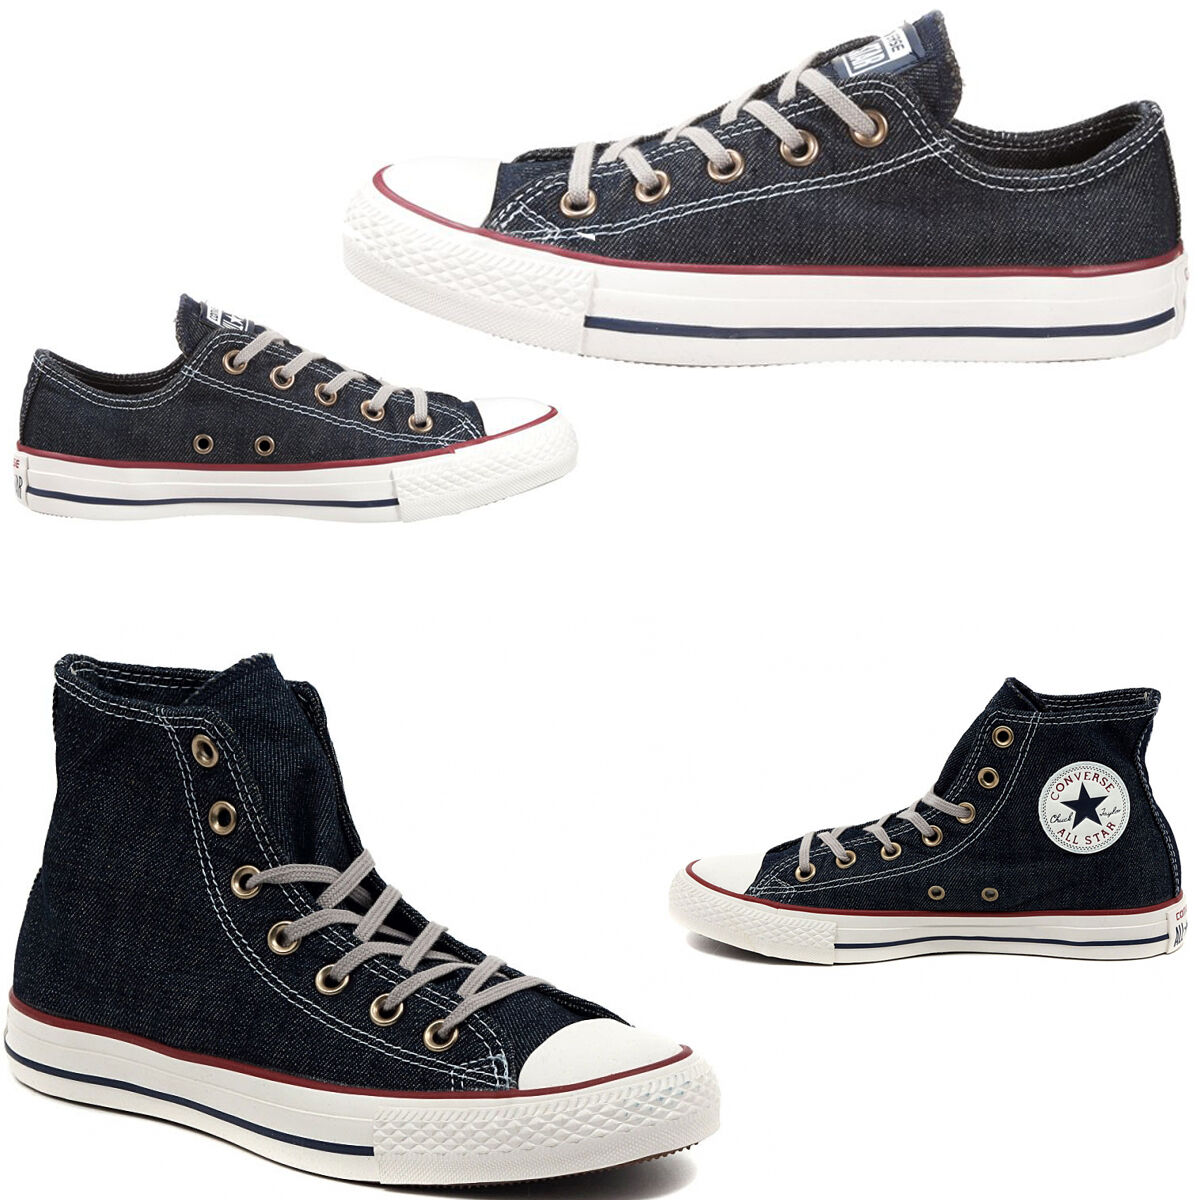 Chaussures  CONVERSE DENIM JEANS HIGH ALL STAR CHUCK TAYLOR SNEAKERS MAN WOMAN LOW